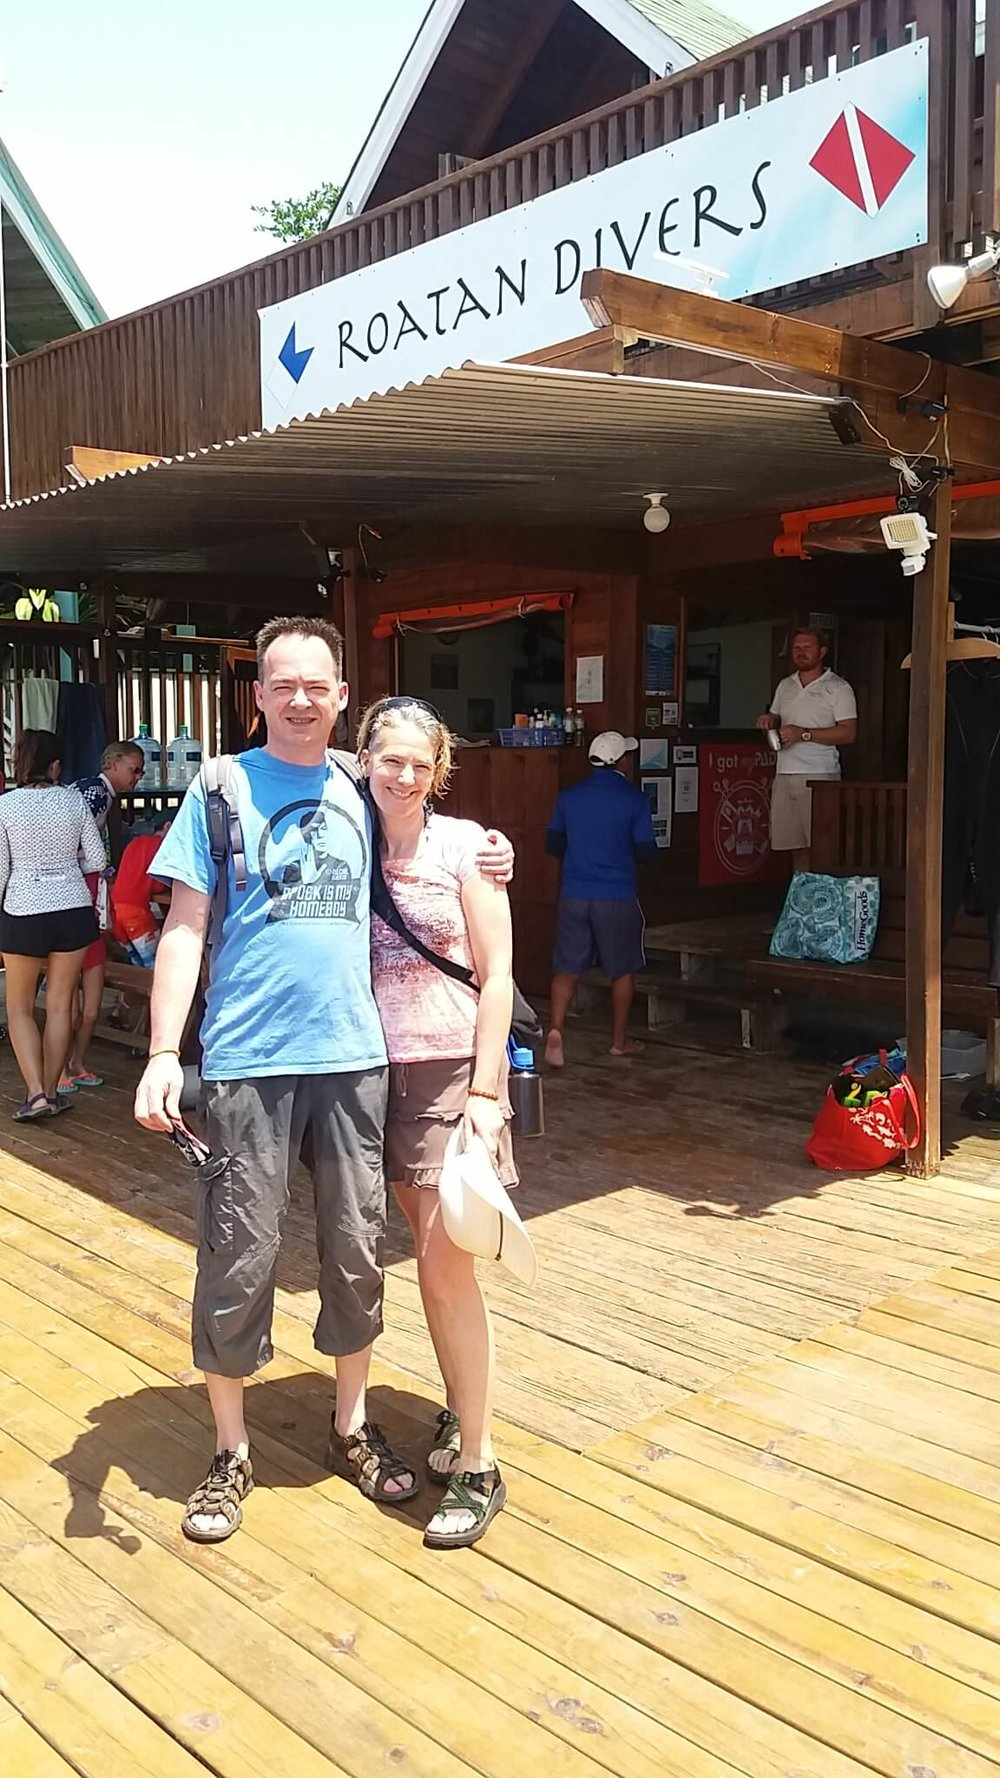 try PADI scuba diving Roatan Divers